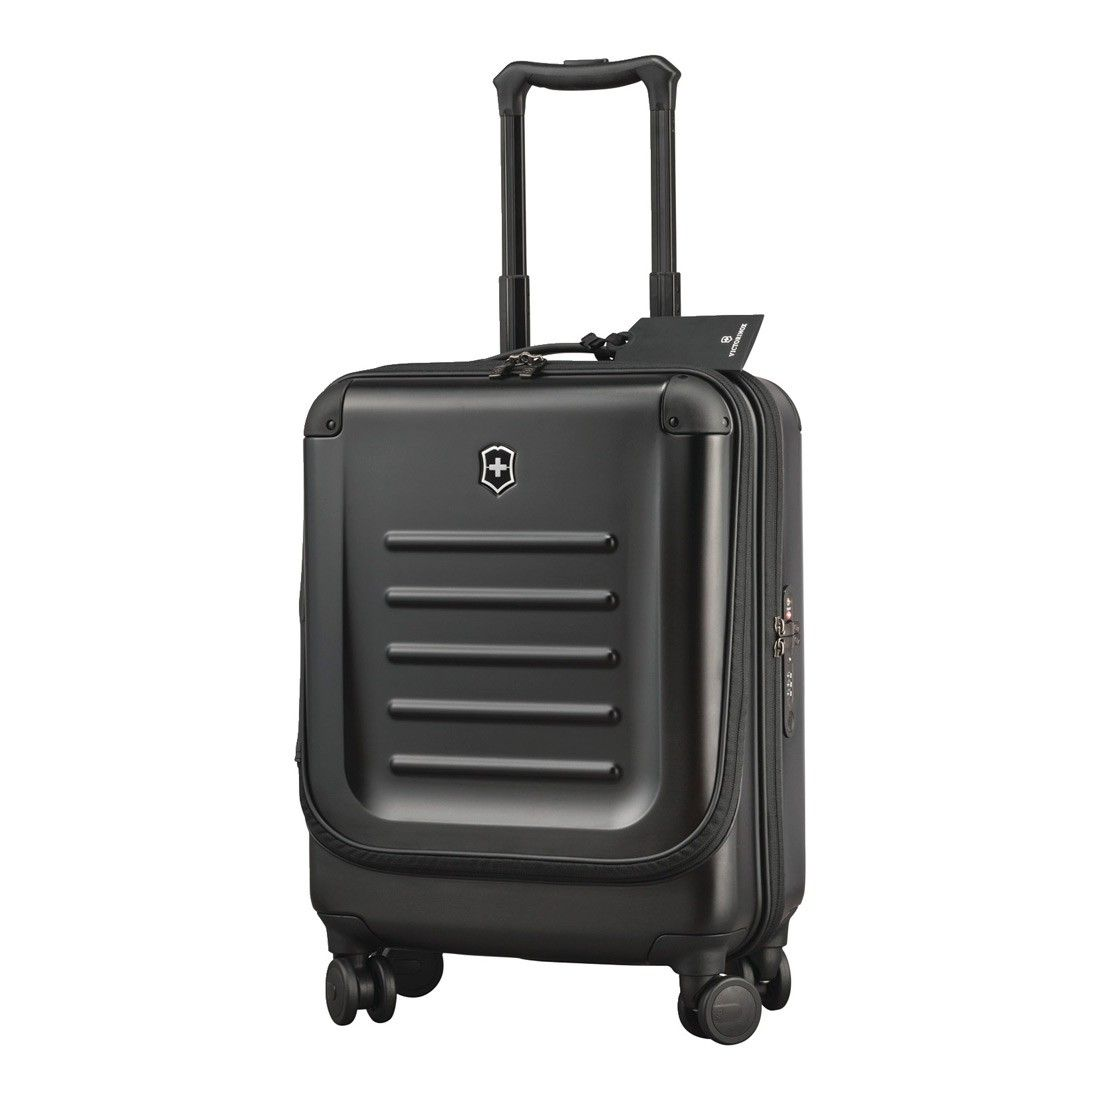 7b8a943d8 Victorinox Spectra™ 2.0 Dual-Access Global Carry-On Black   AT ...